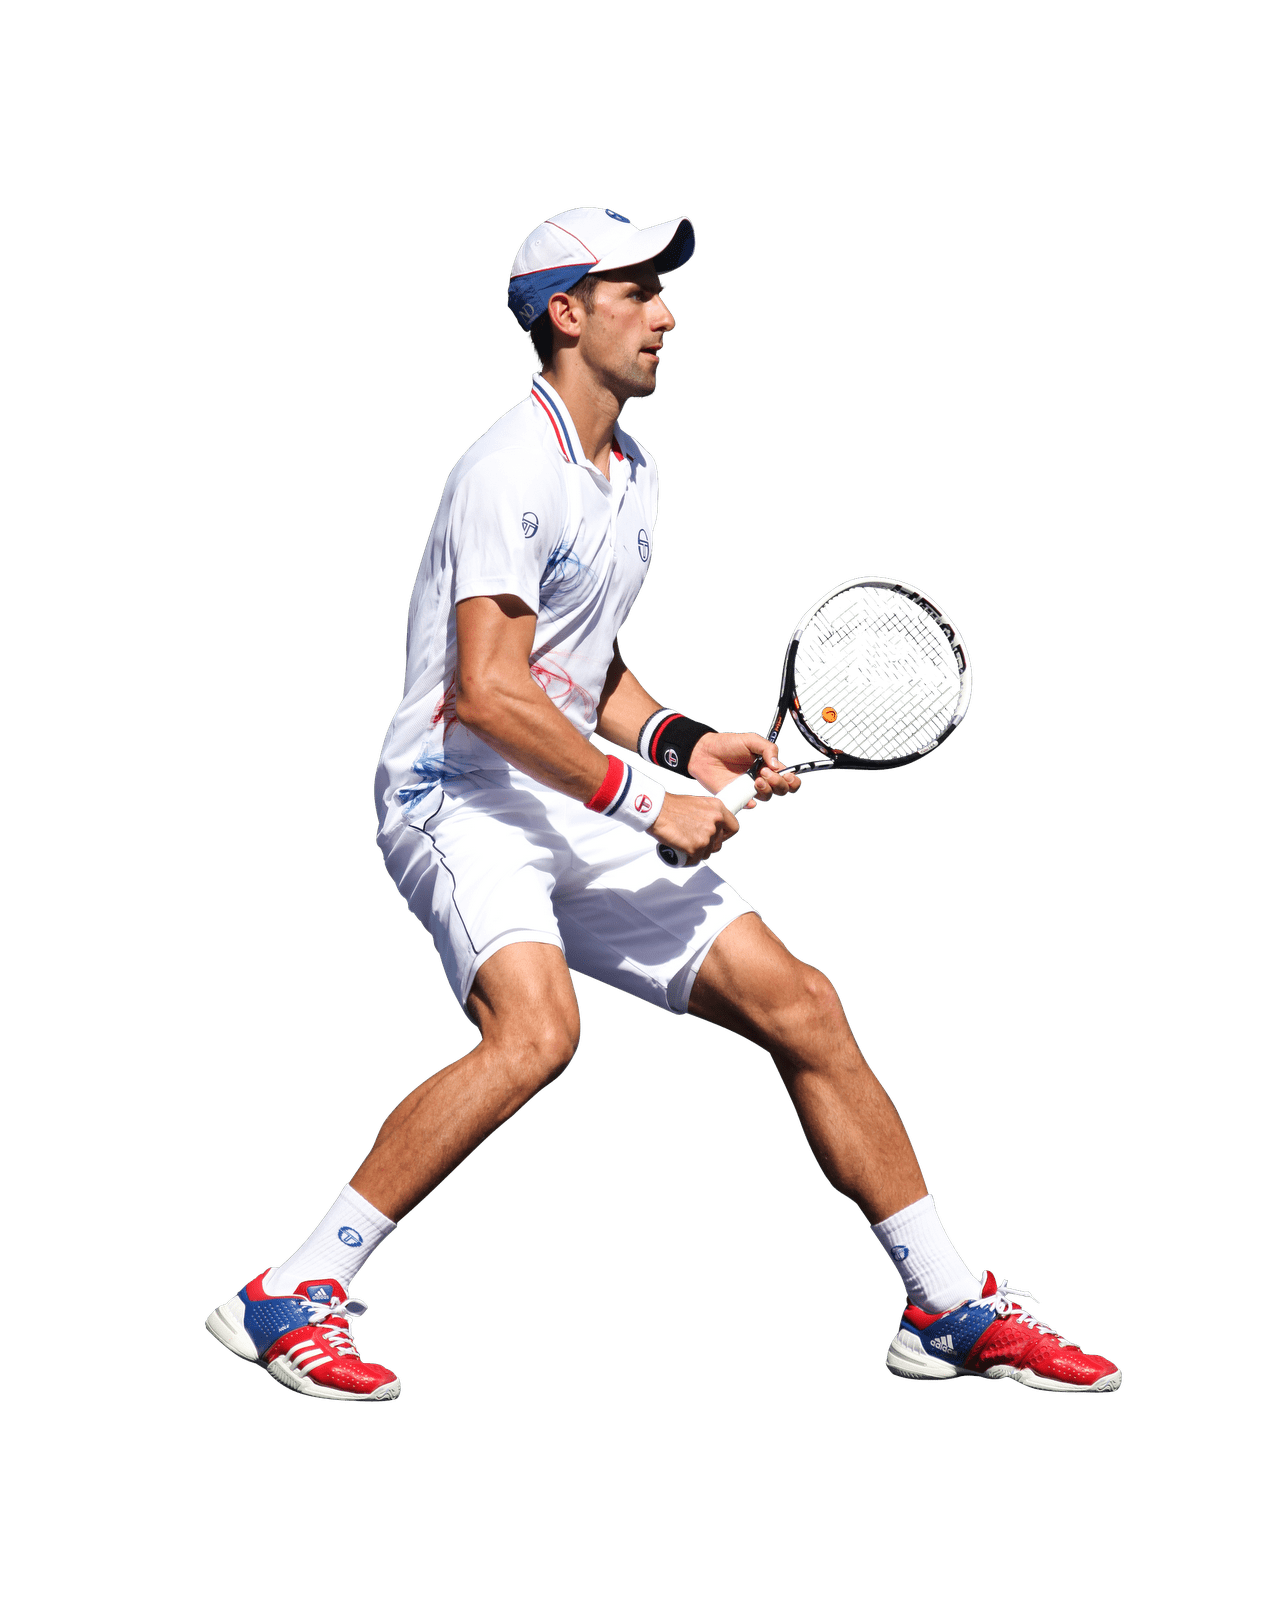 Download · celebrities · sports celebr-Download · celebrities · sports celebrities · novak djokovic-9